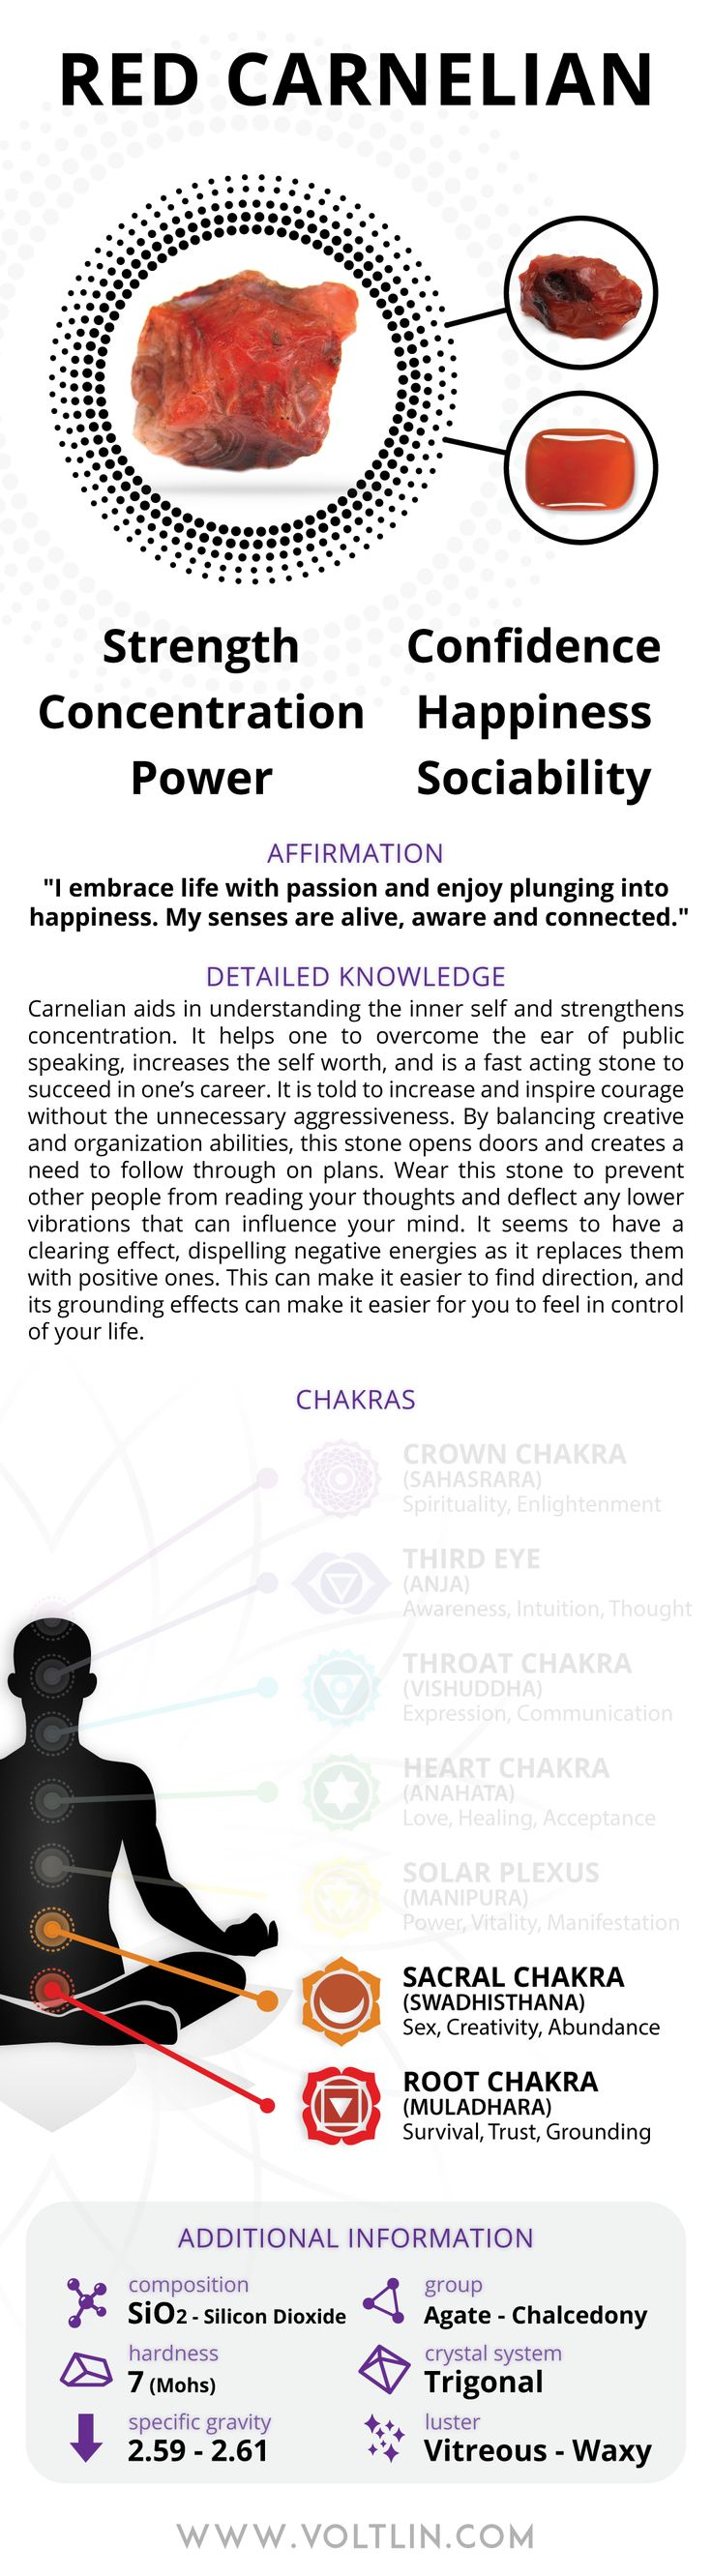 Express Shipping: 2-6 days (ships out within 1 business day) Warranty: Free repairs for up to 6 months Description Carnelian aids in understanding the inner self and strengthens concentration. It help                                                                                                                                                                                 More